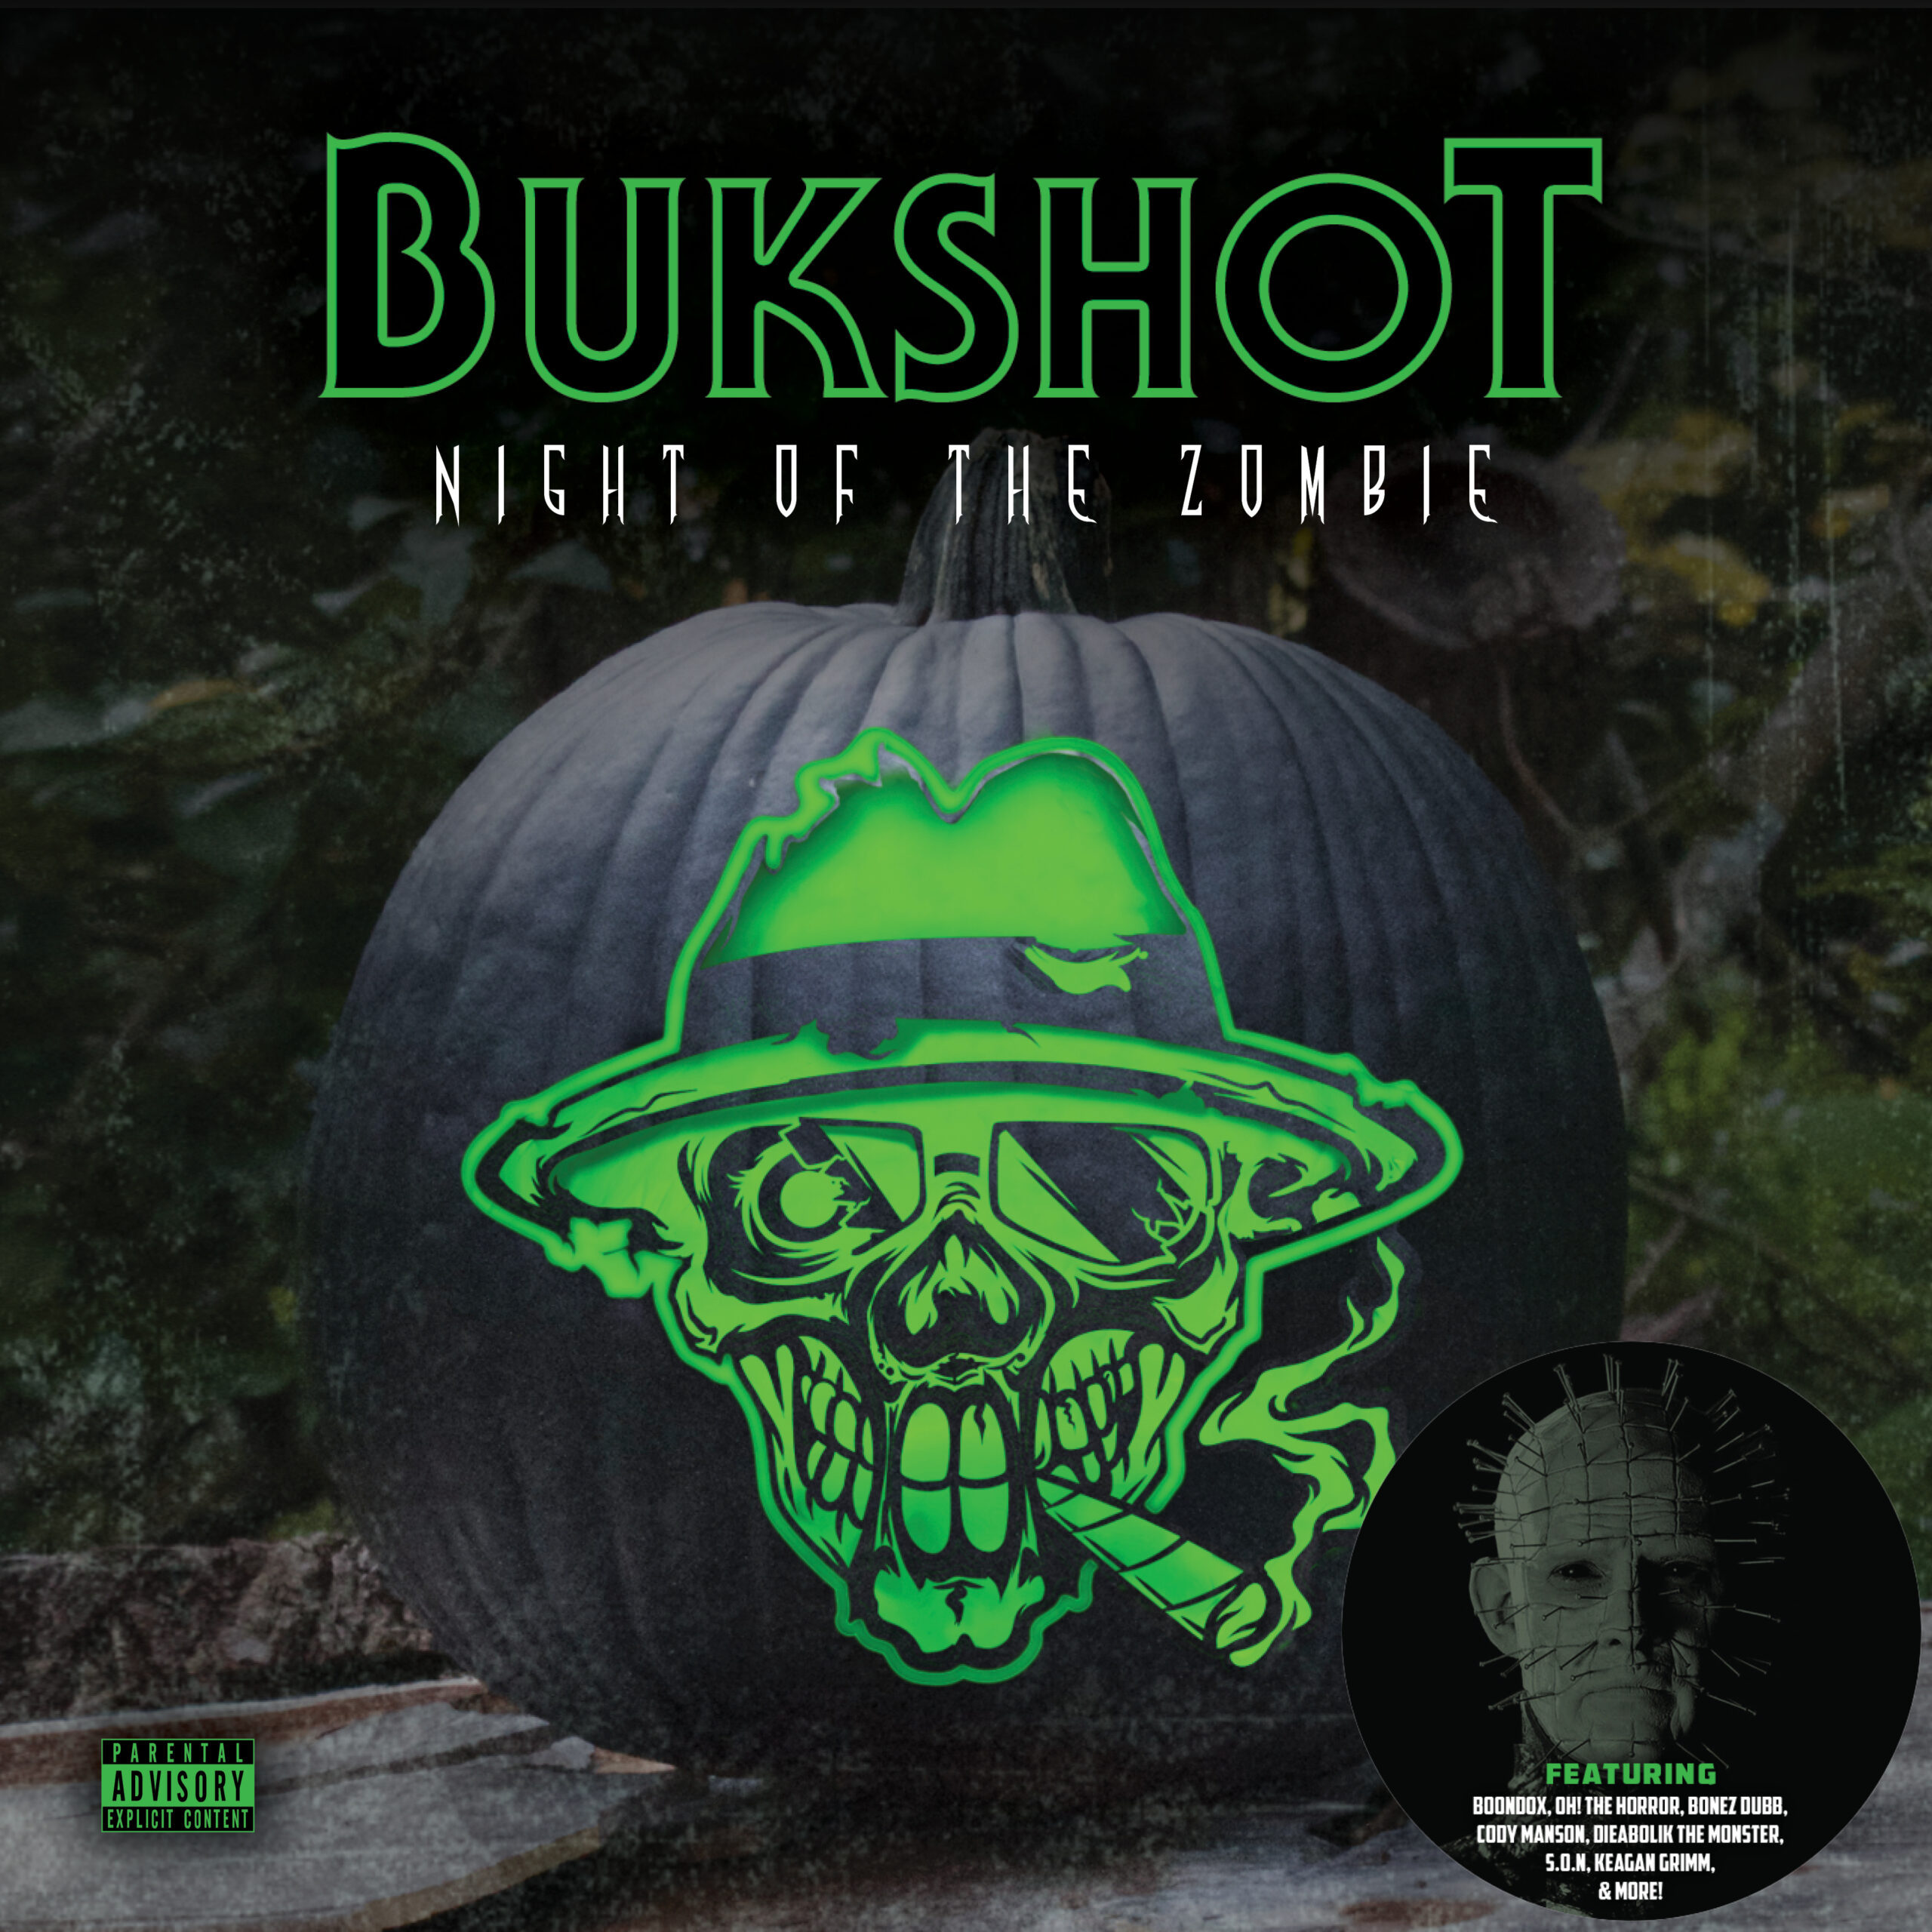 """Bukshot """"Night Of The Zombie"""" CD (Your Choice Of Pinhead Or Freddy Krueger Collectible Sticker!)"""